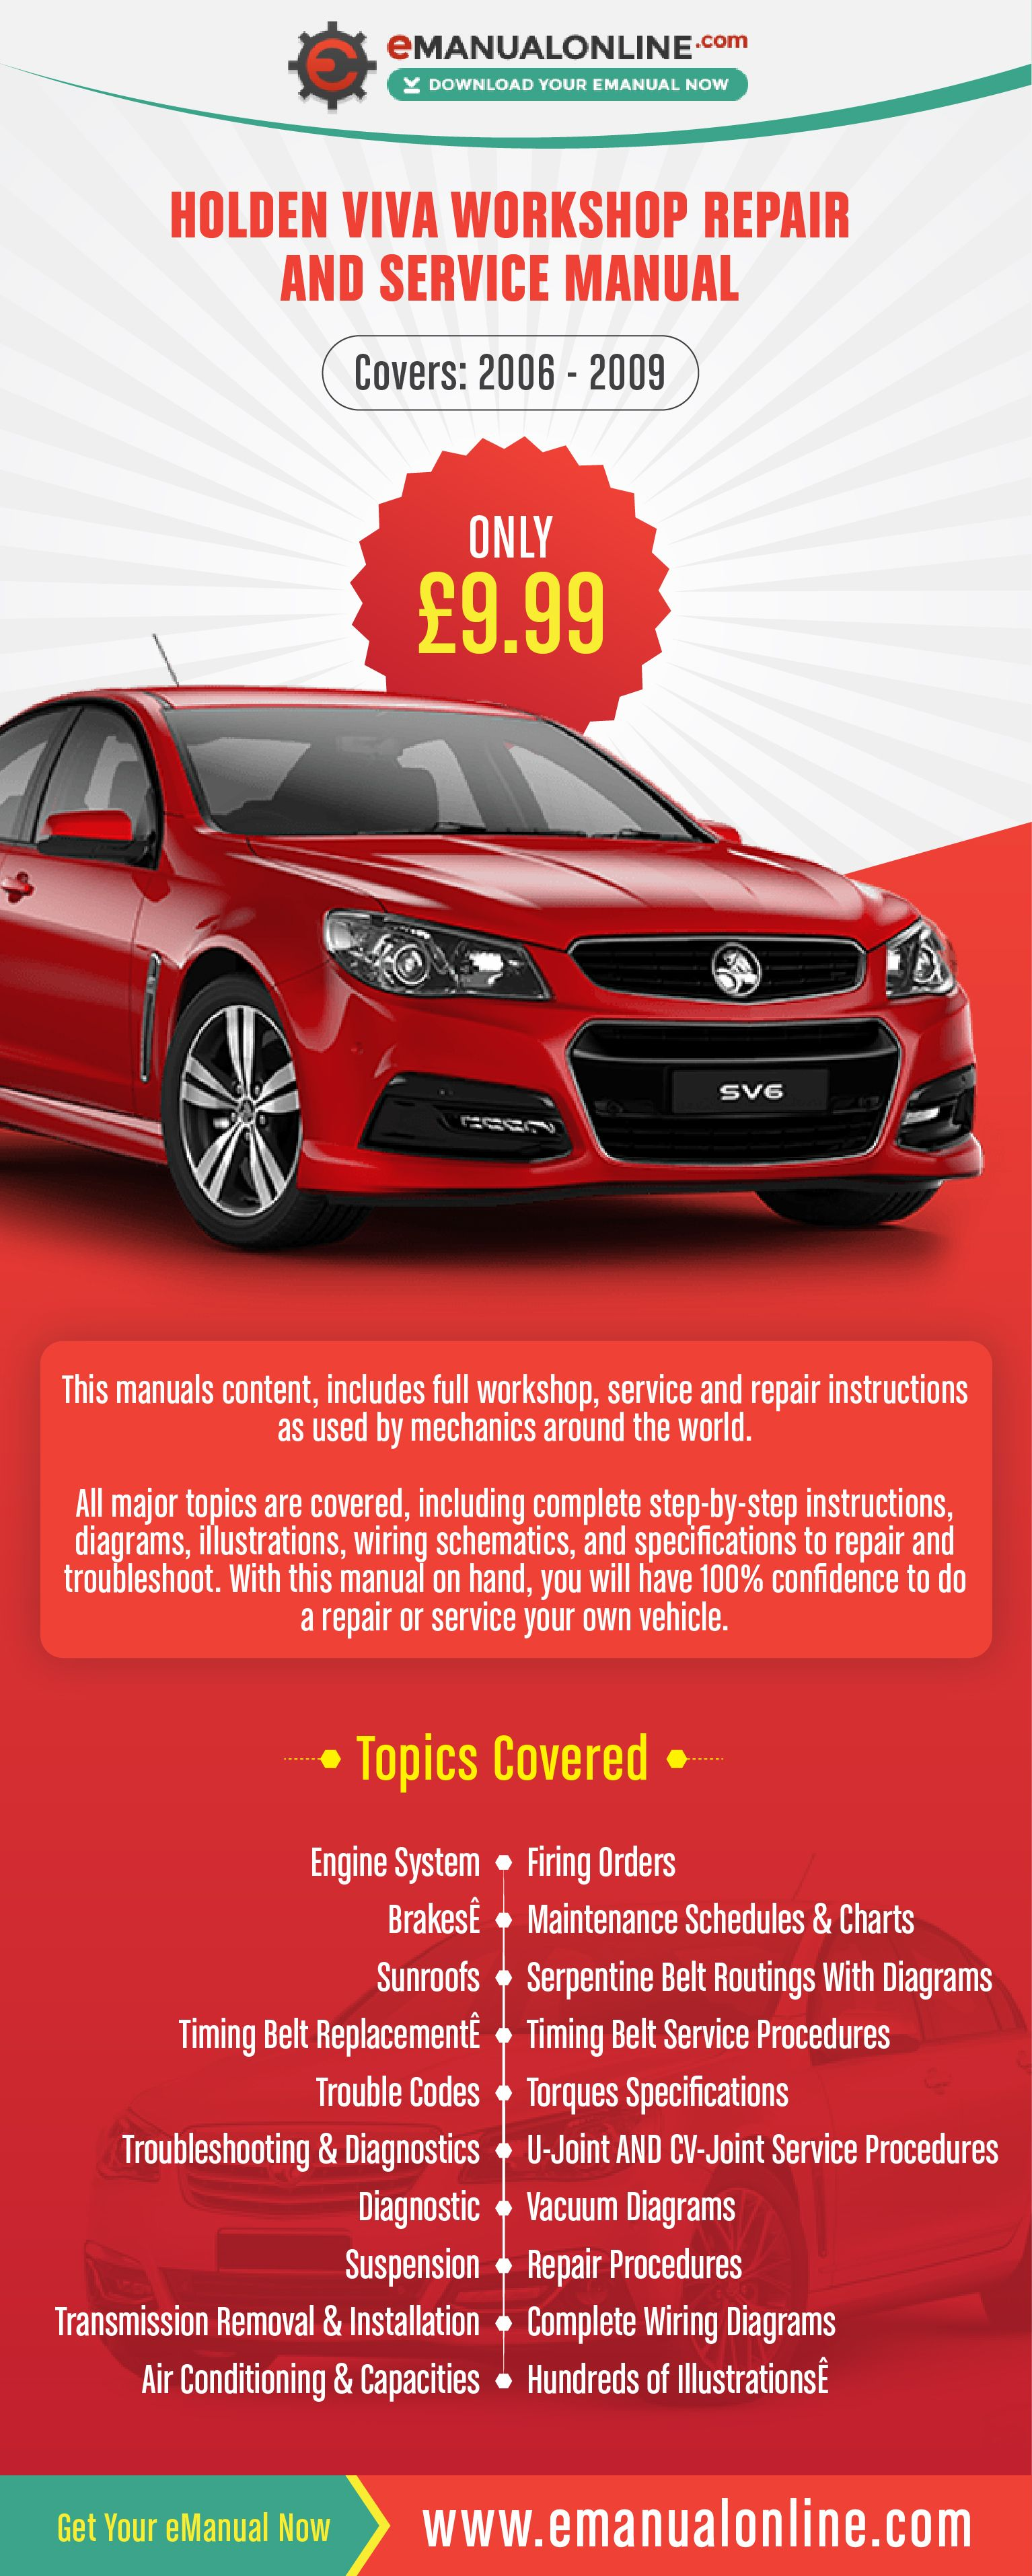 holden viva workshop repair and service manual this manuals content includes full workshop service and repair instructions as used by mechanics around the  [ 1534 x 3830 Pixel ]